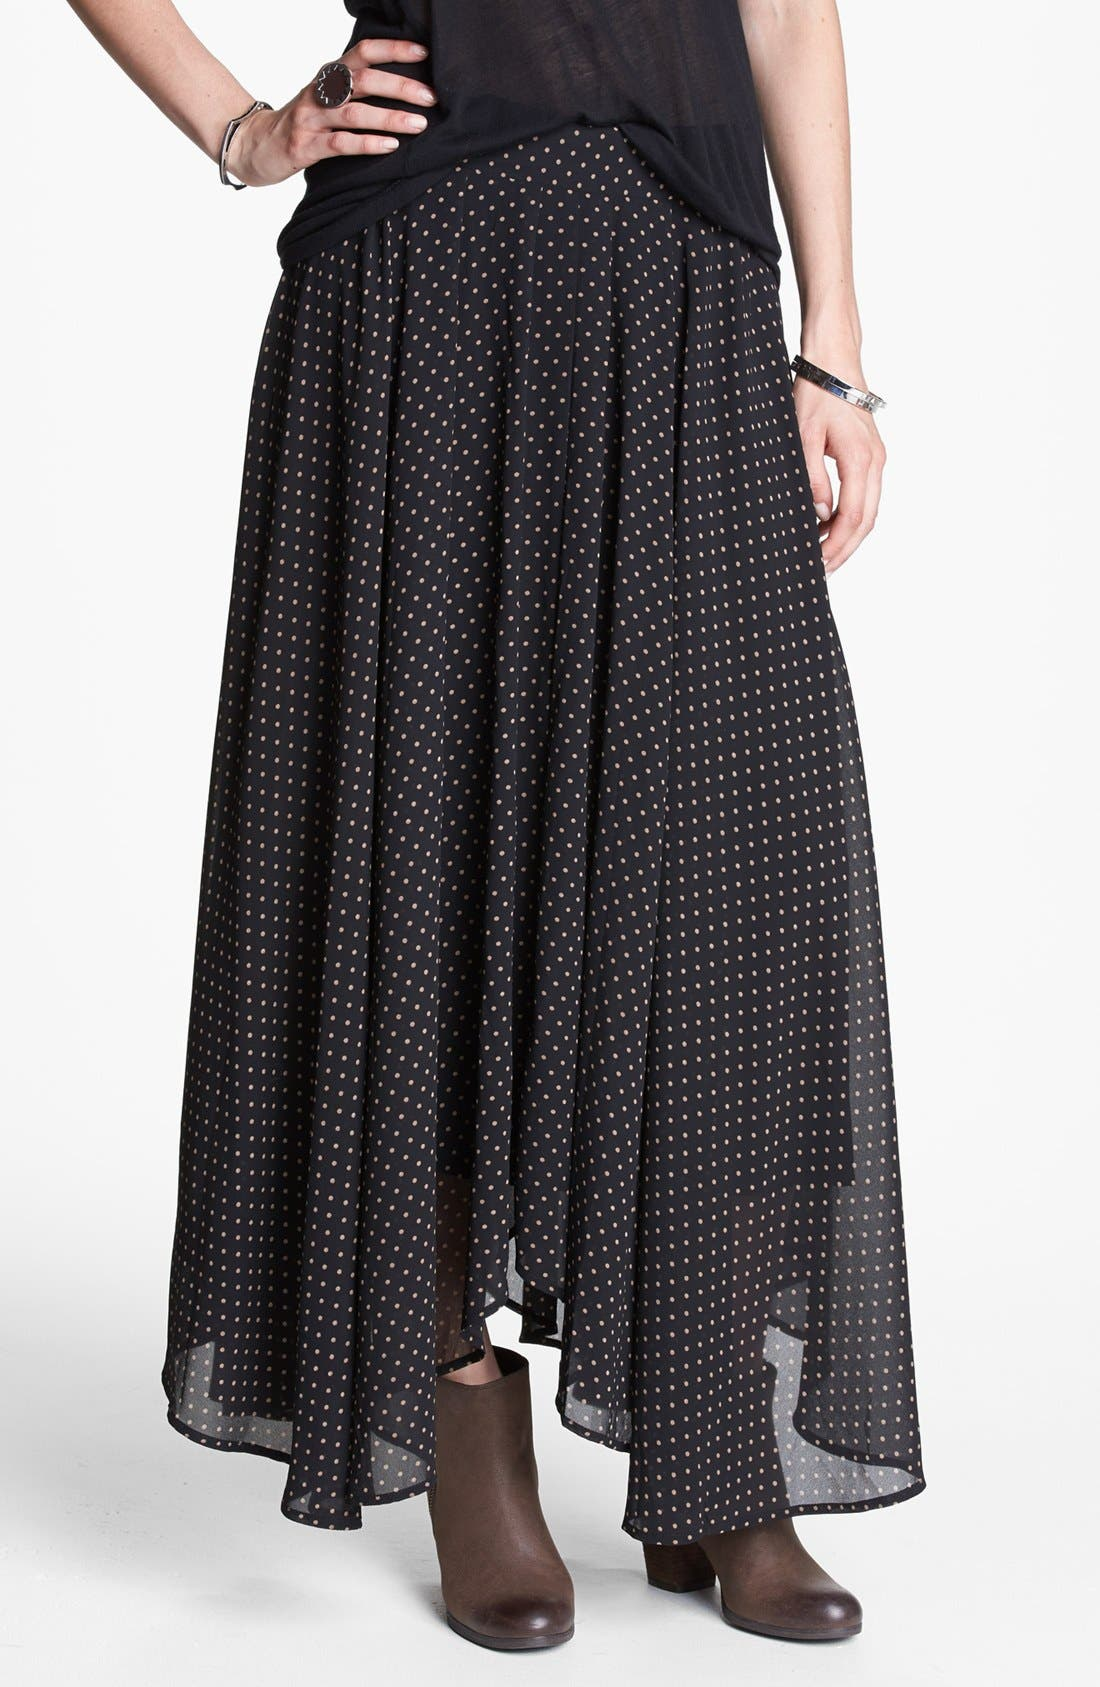 Alternate Image 1 Selected - Free People Polka Dot Maxi Skirt